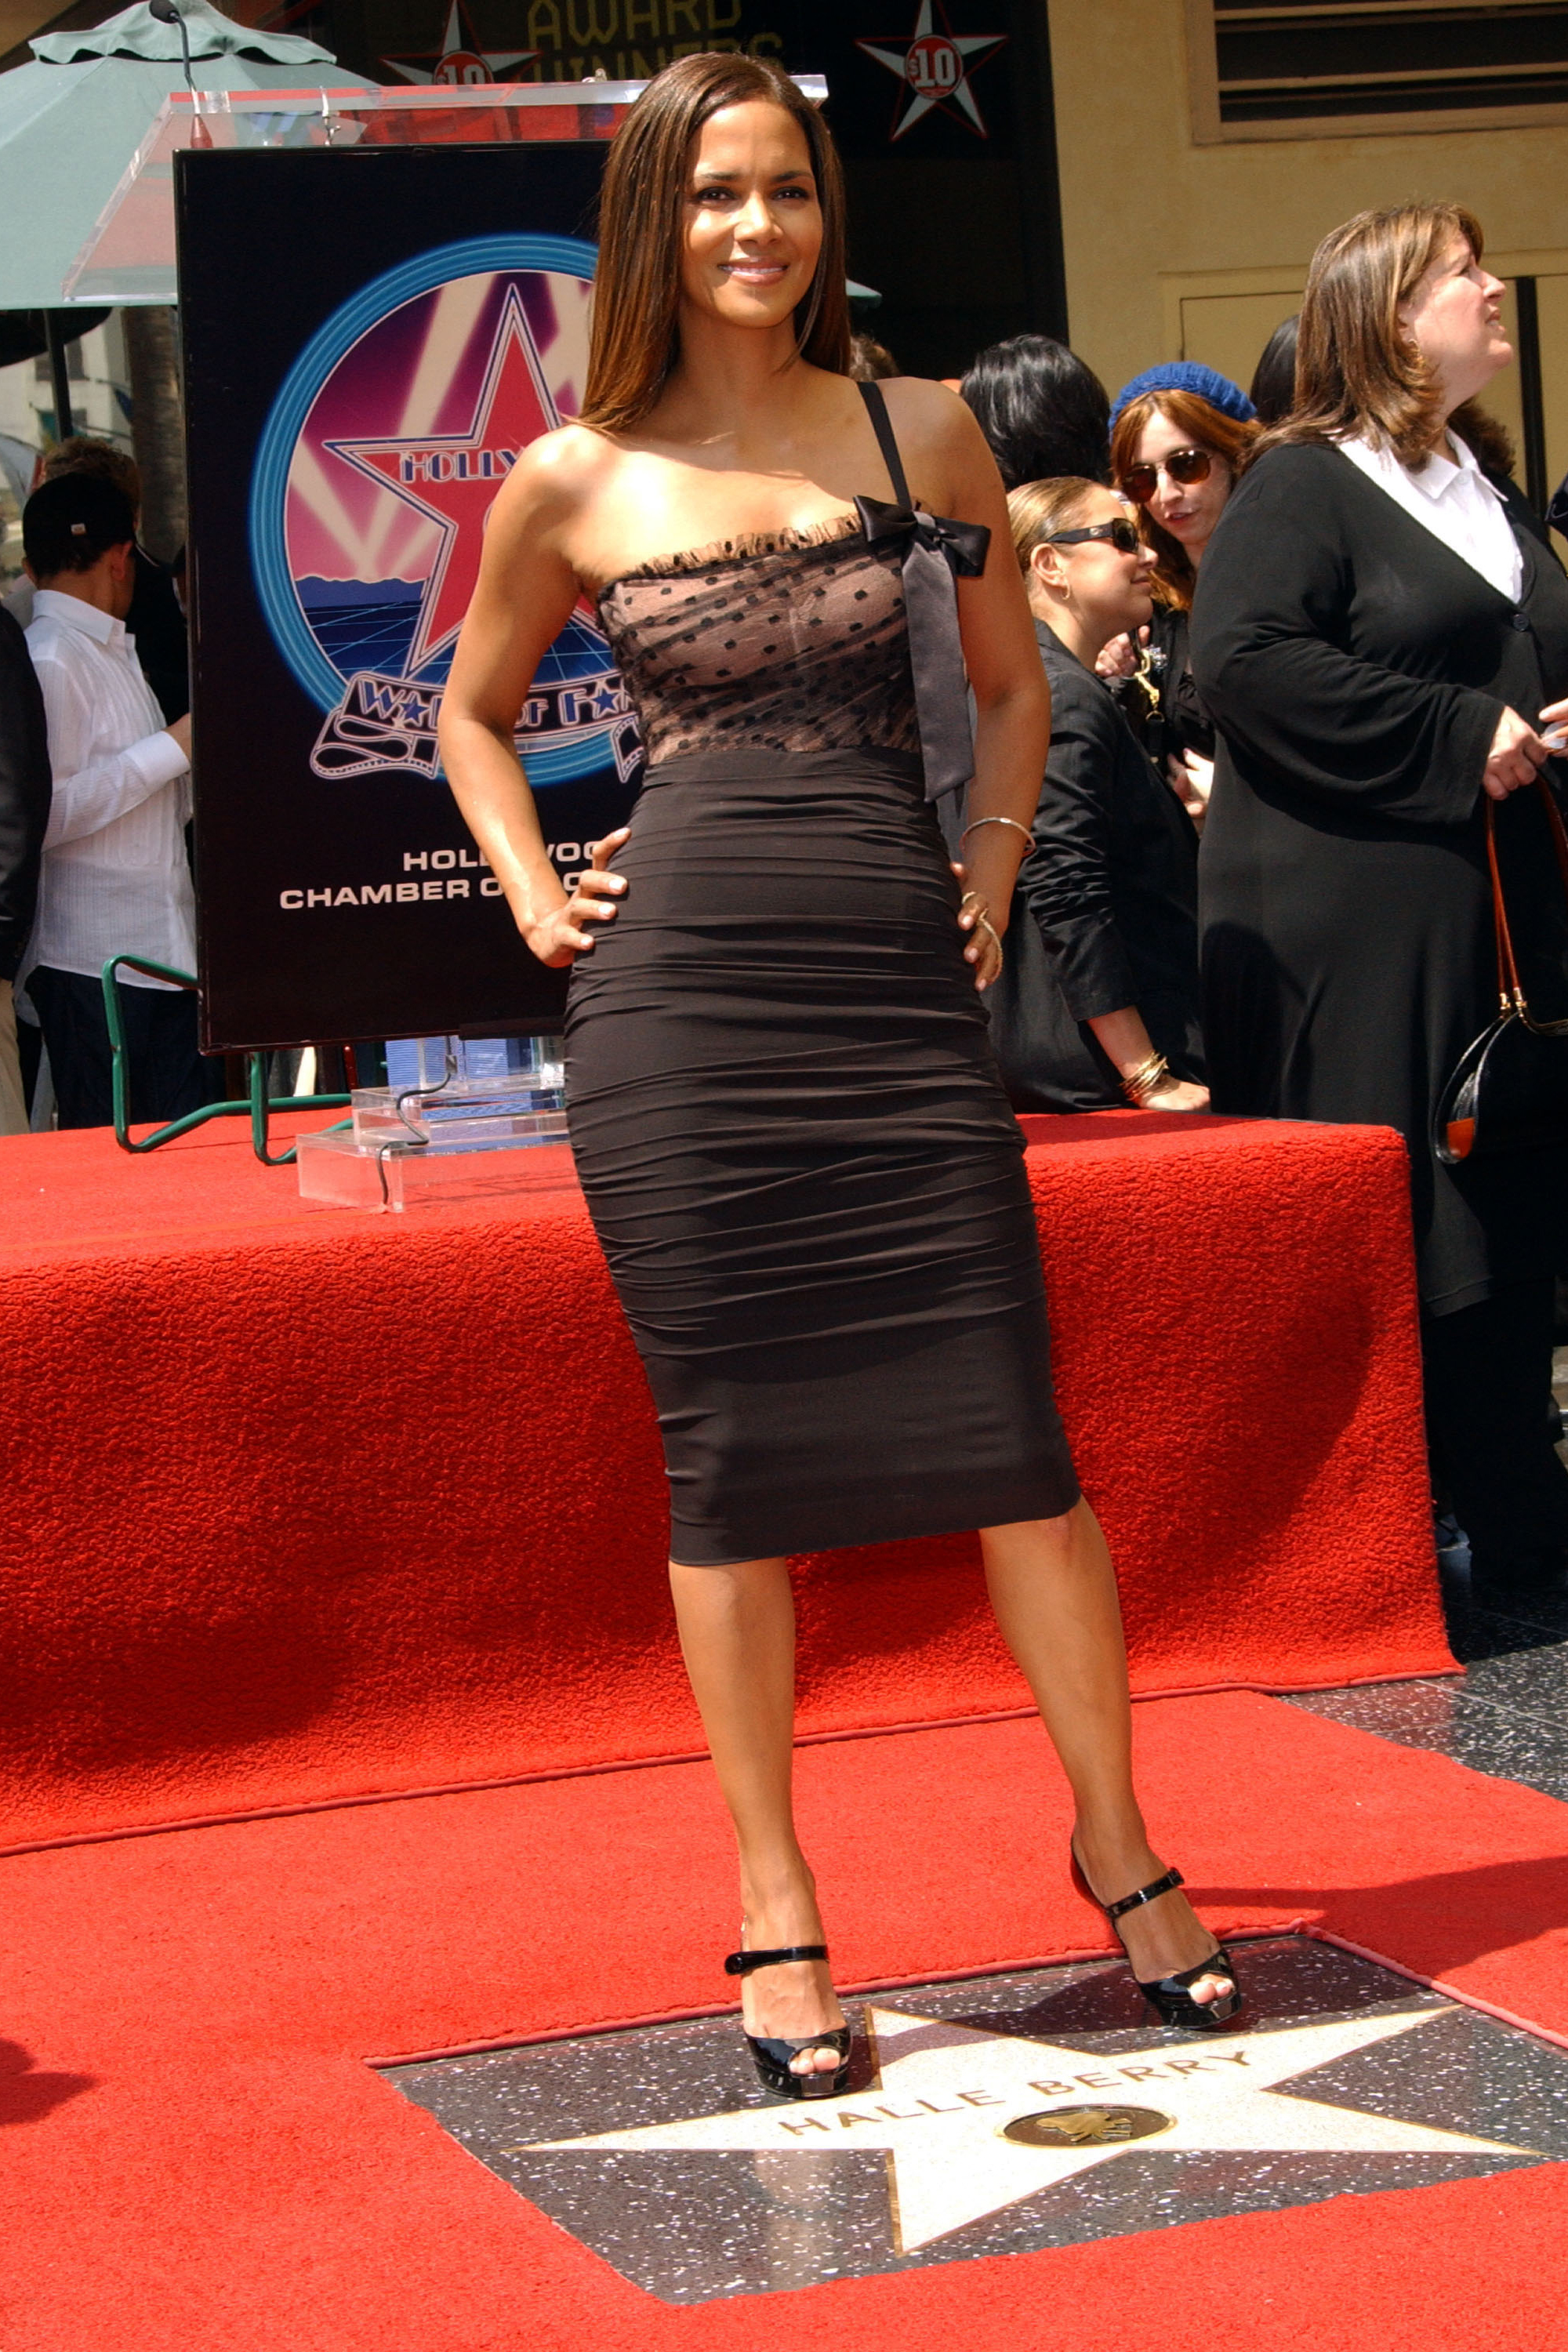 Halle Berry Photo Gallery 1293 Best Halle Berry Pics